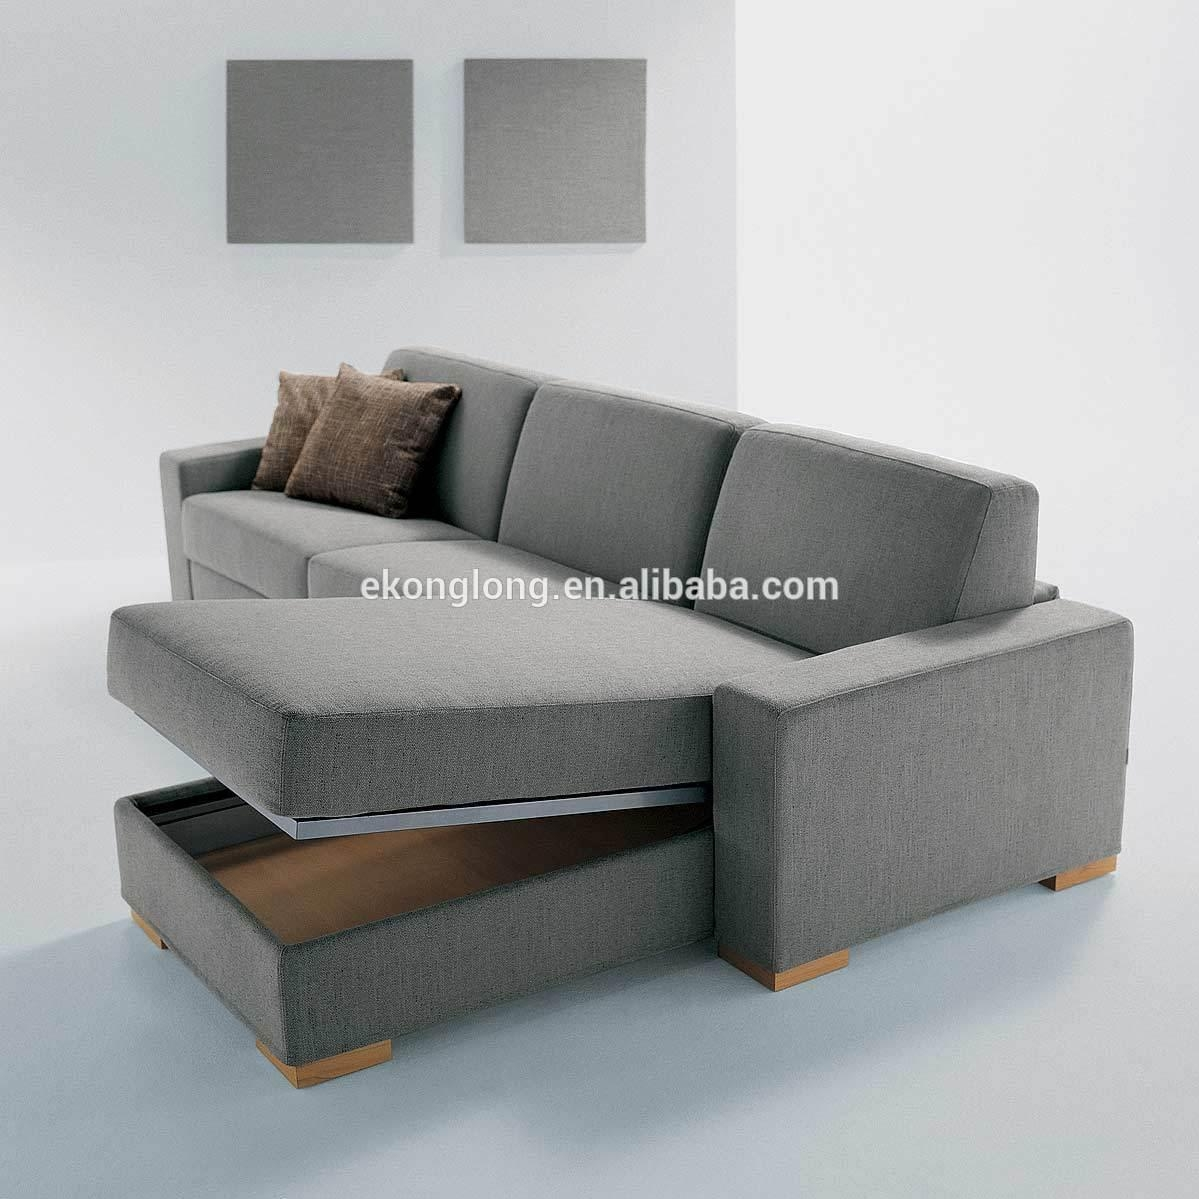 Collection In King Sofa Sleeper Stunning Living Room Furniture With King Size Sofa Beds (Image 5 of 20)